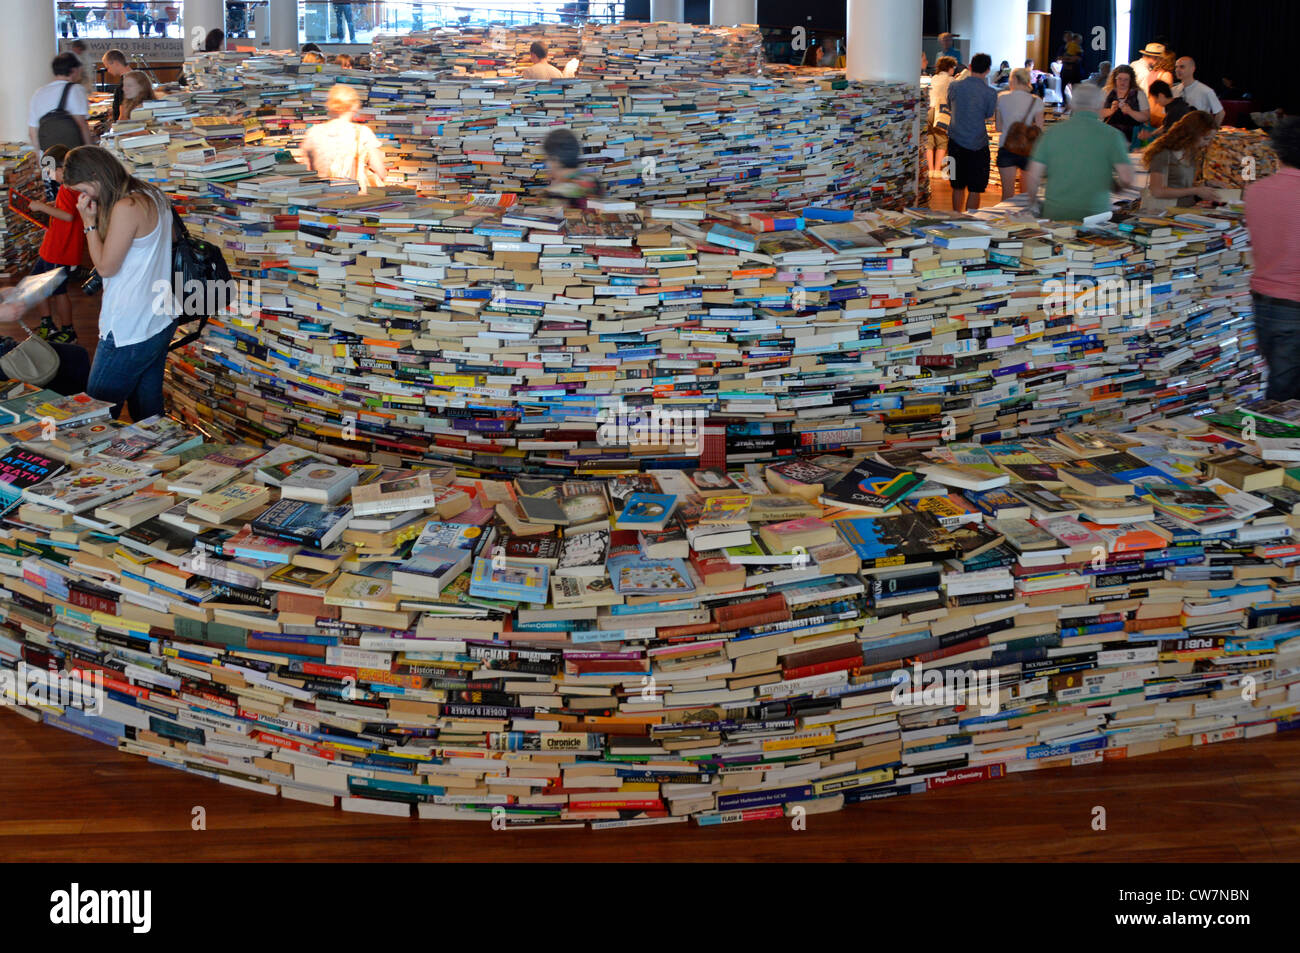 Indoor maze built using 250,000 books inspired by Jorge Luis Borges & created by Brazilian artists Marcos Saboys - Stock Image